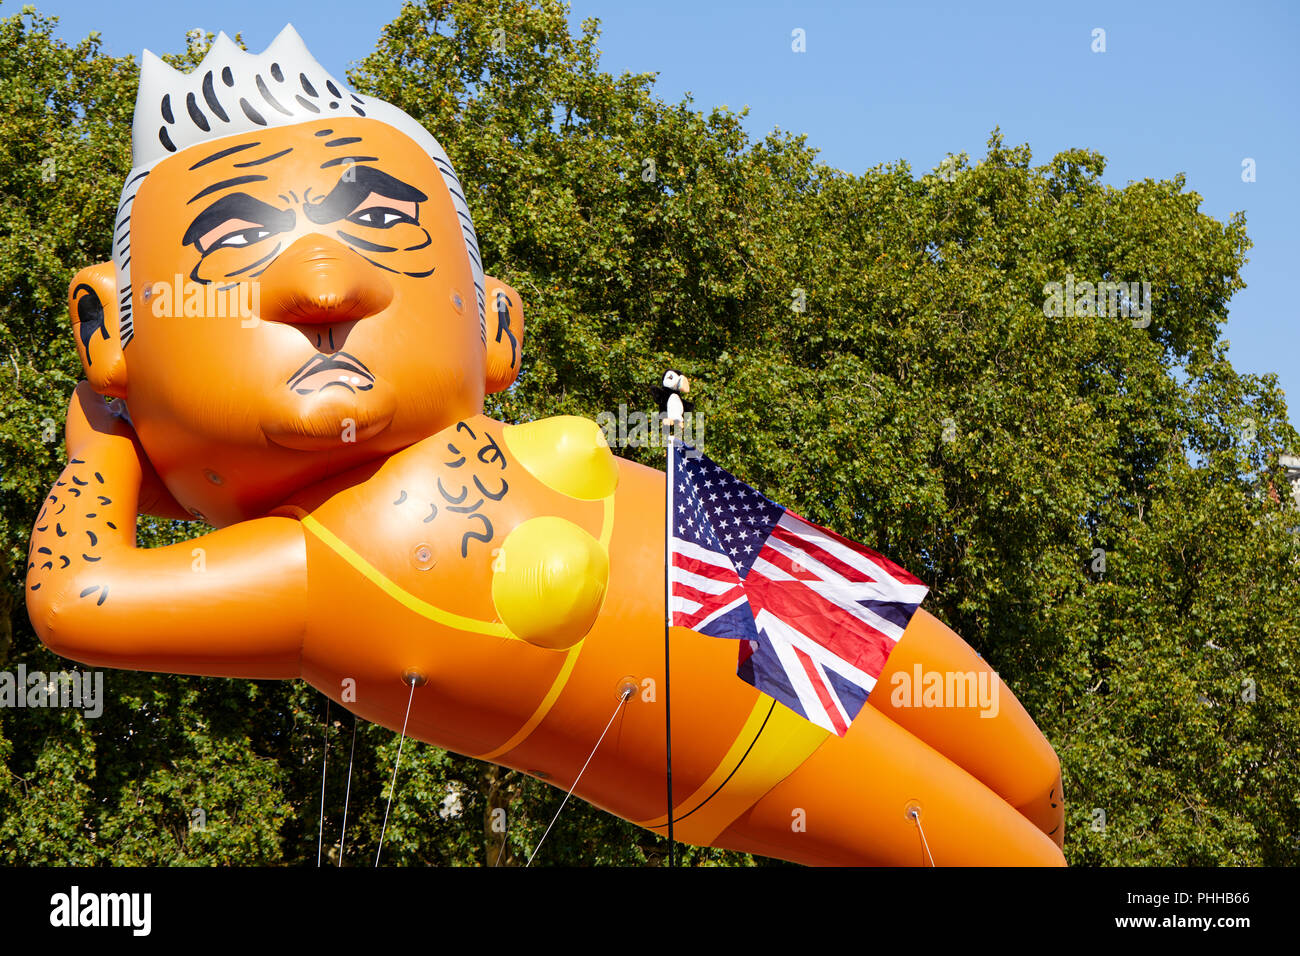 London, U.K. - 1 September 2018: A balloon of London mayor Sadiq Khan, in front of a combined US/UK flag, is flown in Parliament Square at the Make London Safe protest. Credit: Kevin Frost/Alamy Live News - Stock Image